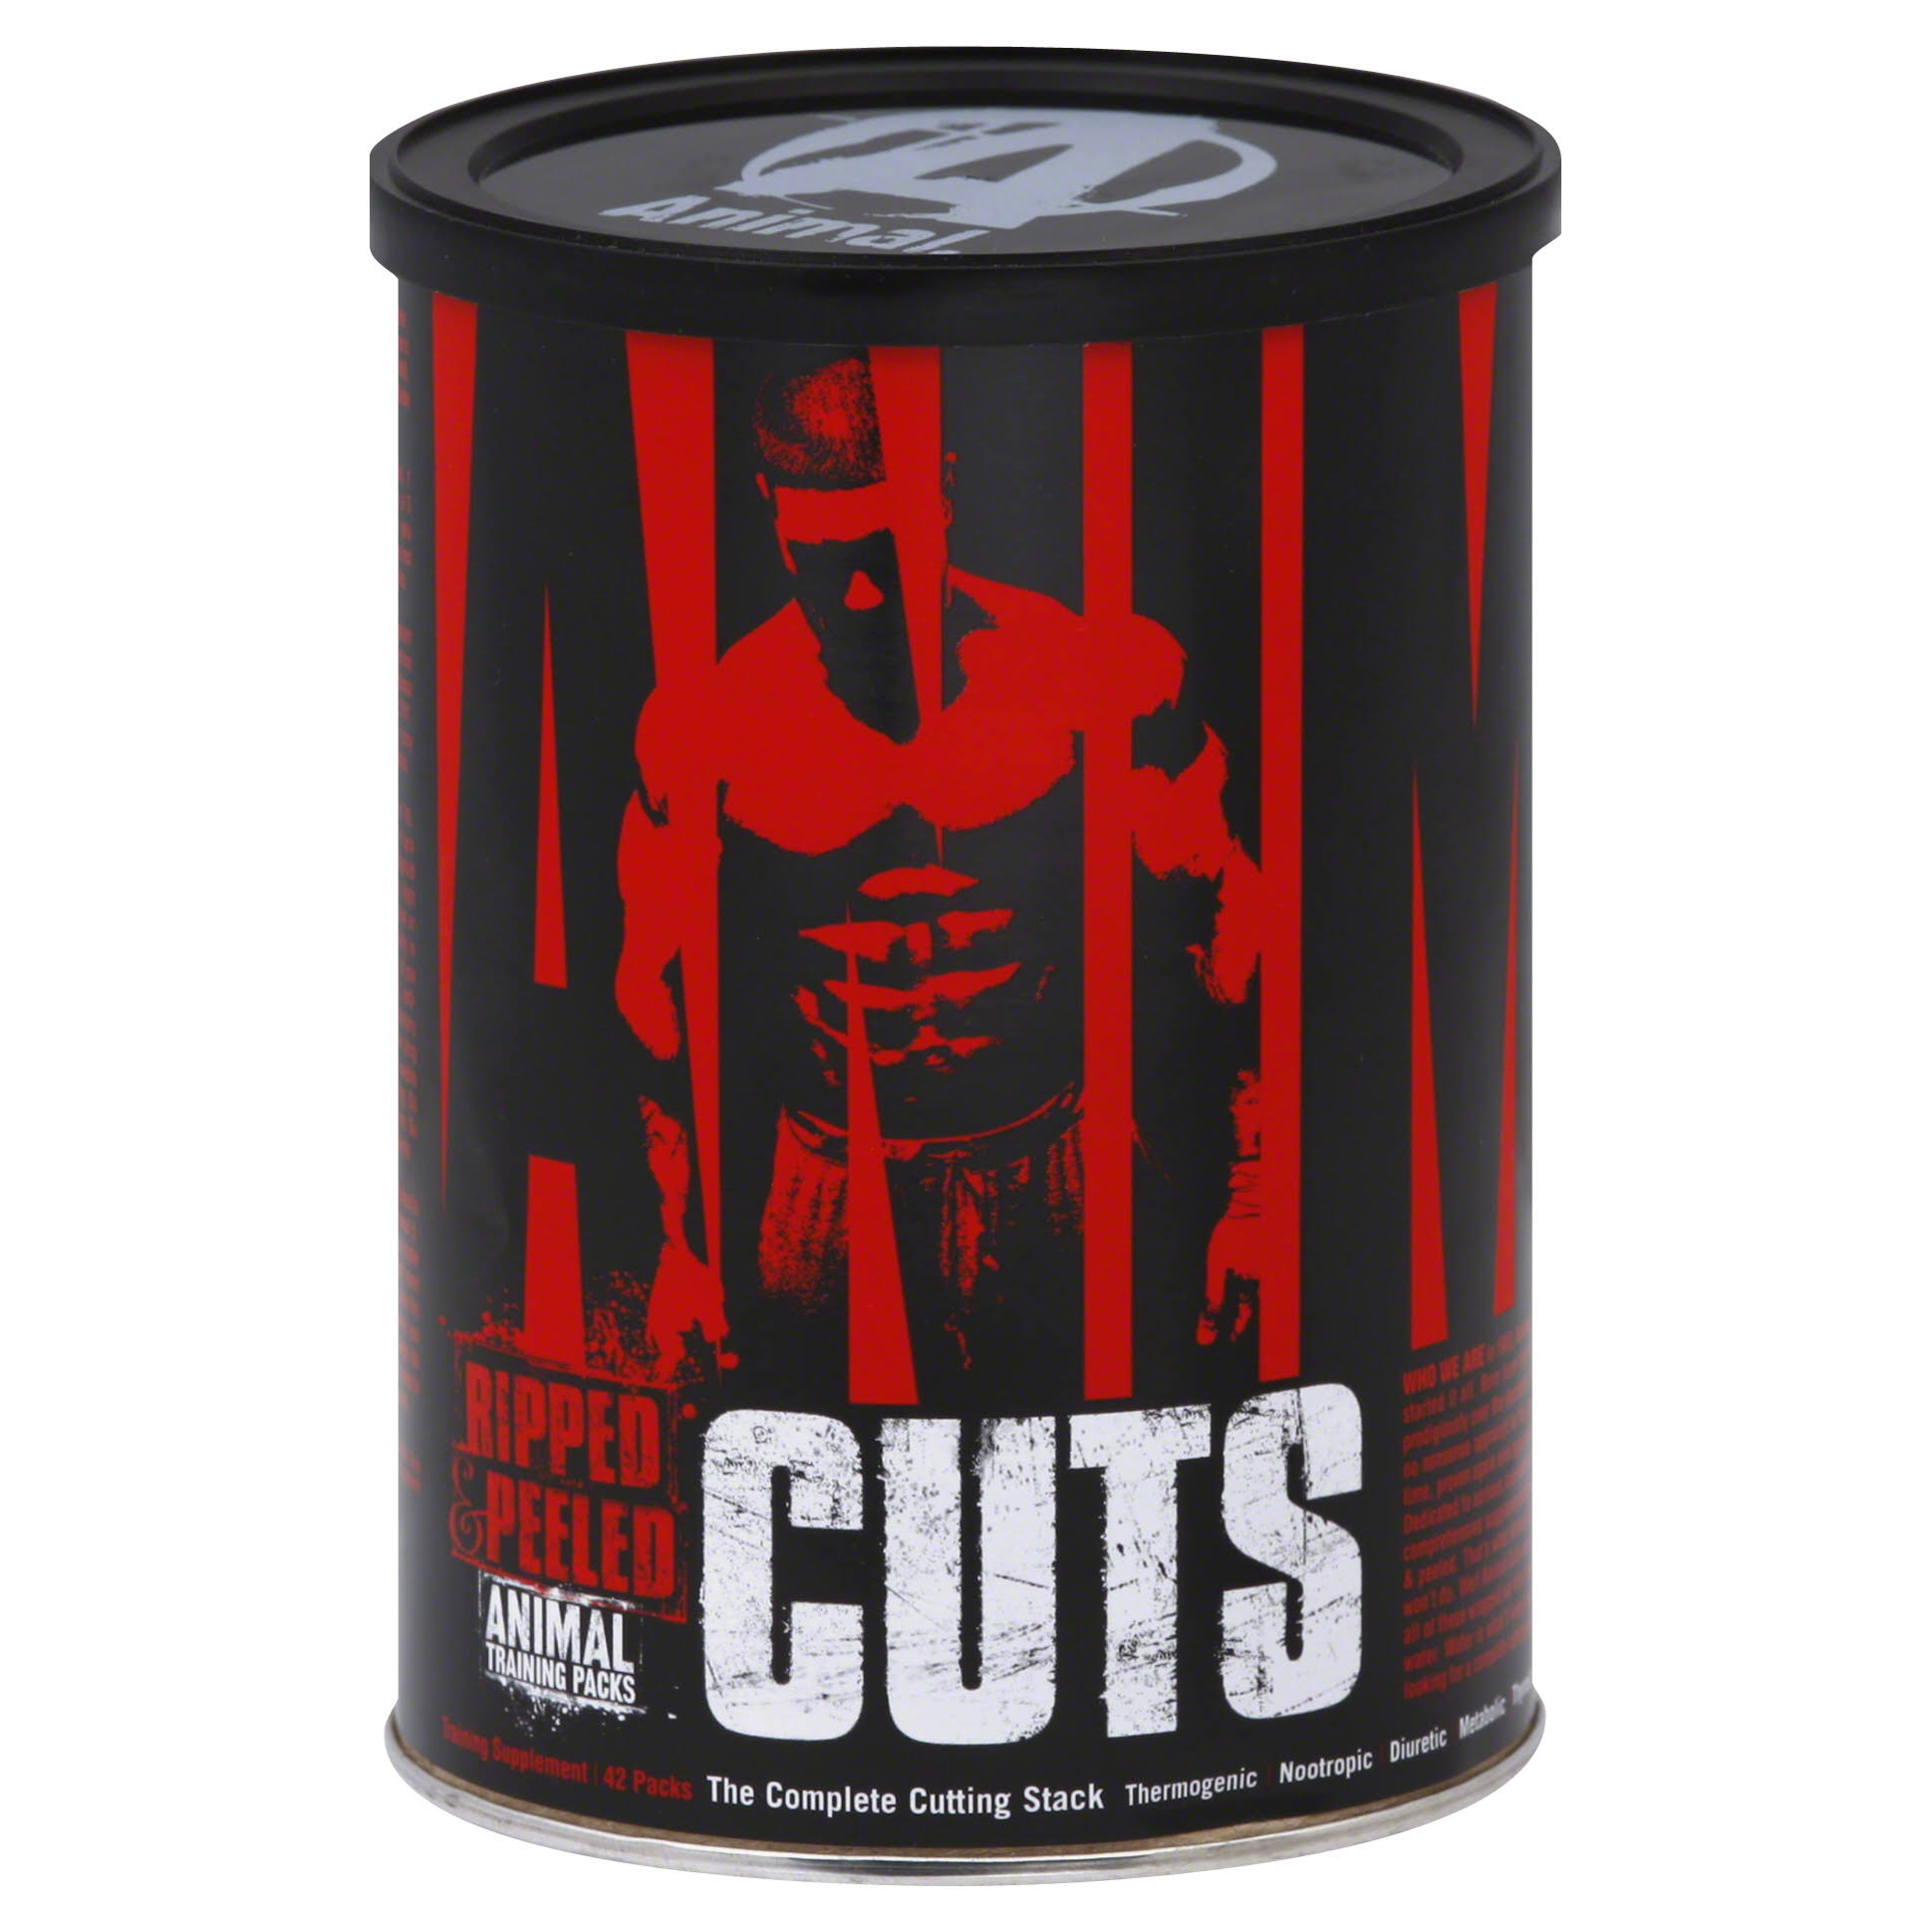 Universal Nutrition Animal Cuts, Ripped and Peeled Animal Training Packs